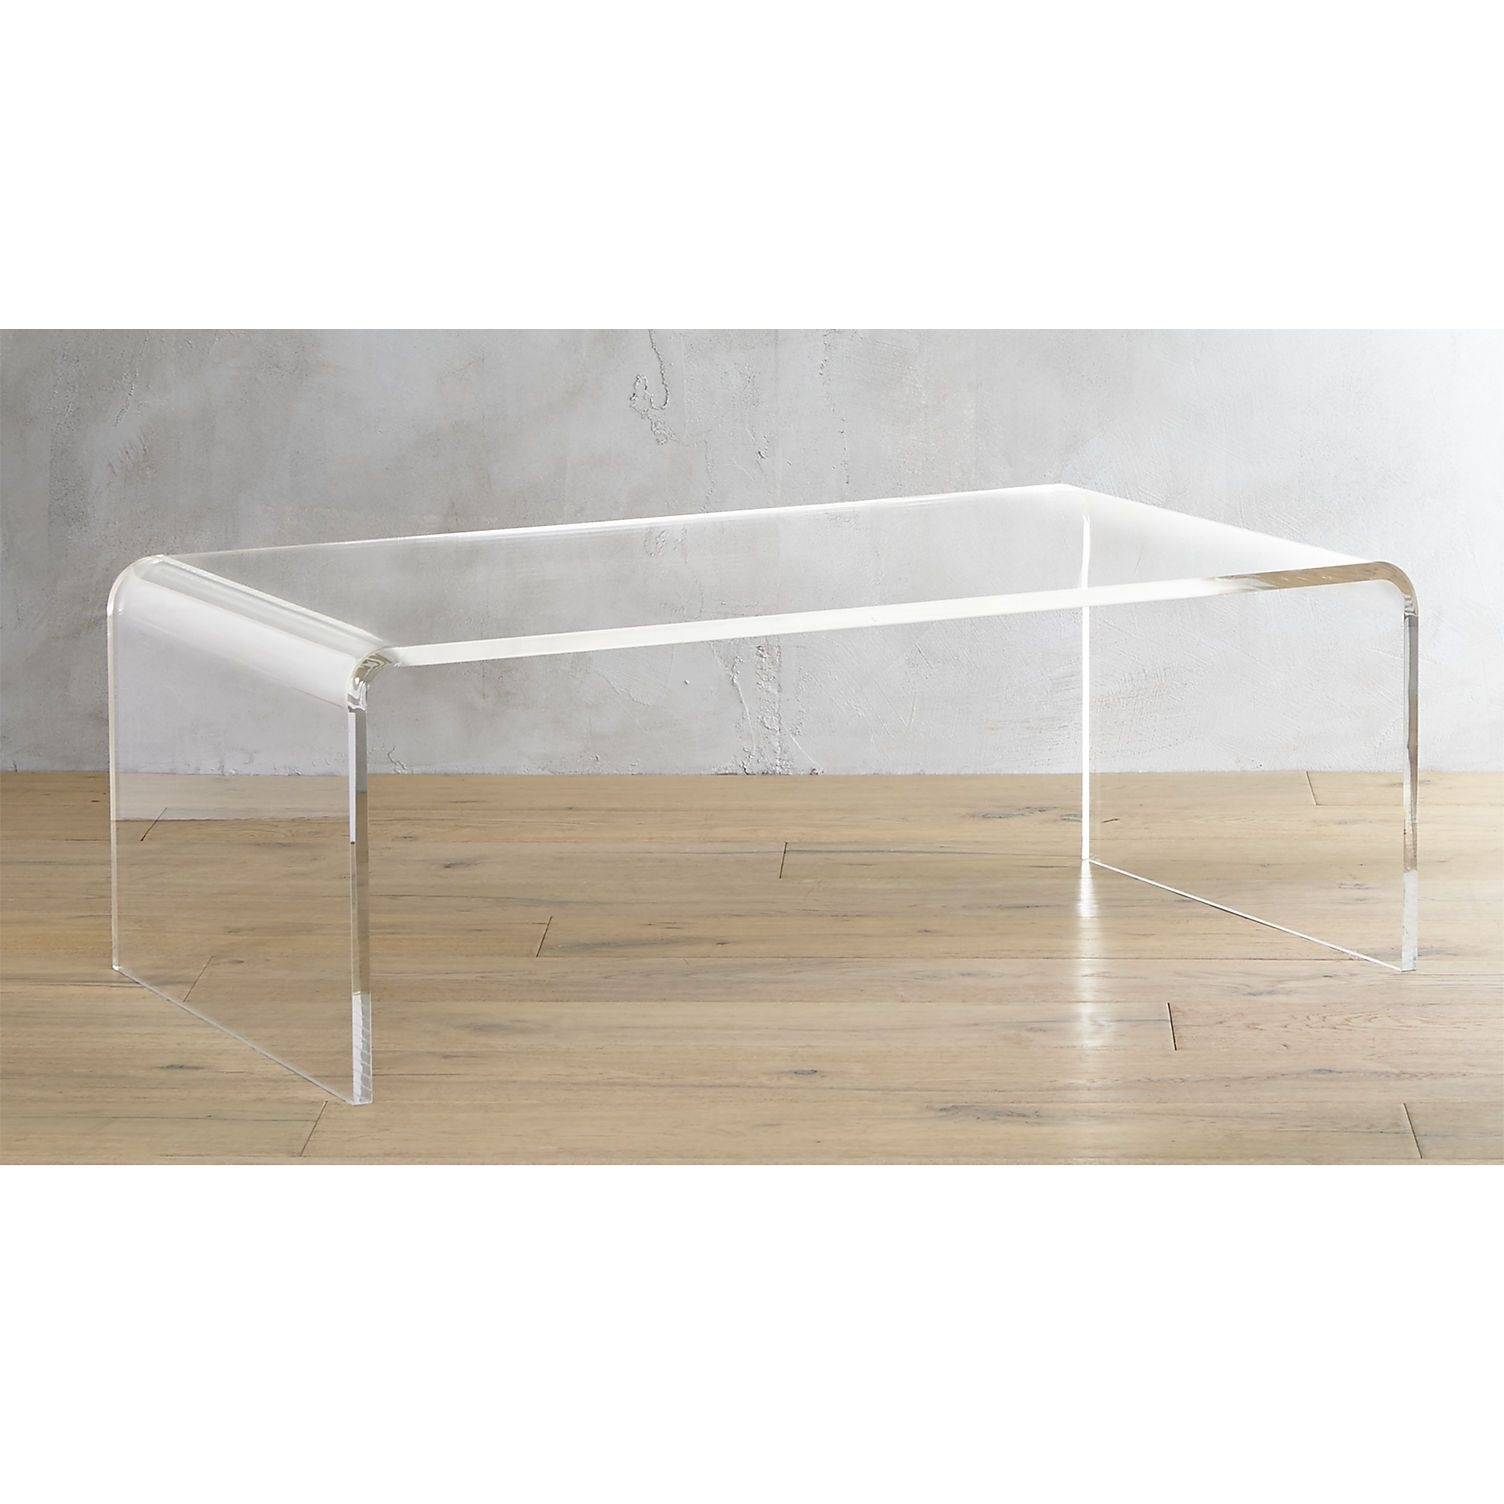 Acrylics, Glass Table And Coffee Regarding Well Known Flat Black And Cobre Coffee Tables (View 6 of 20)